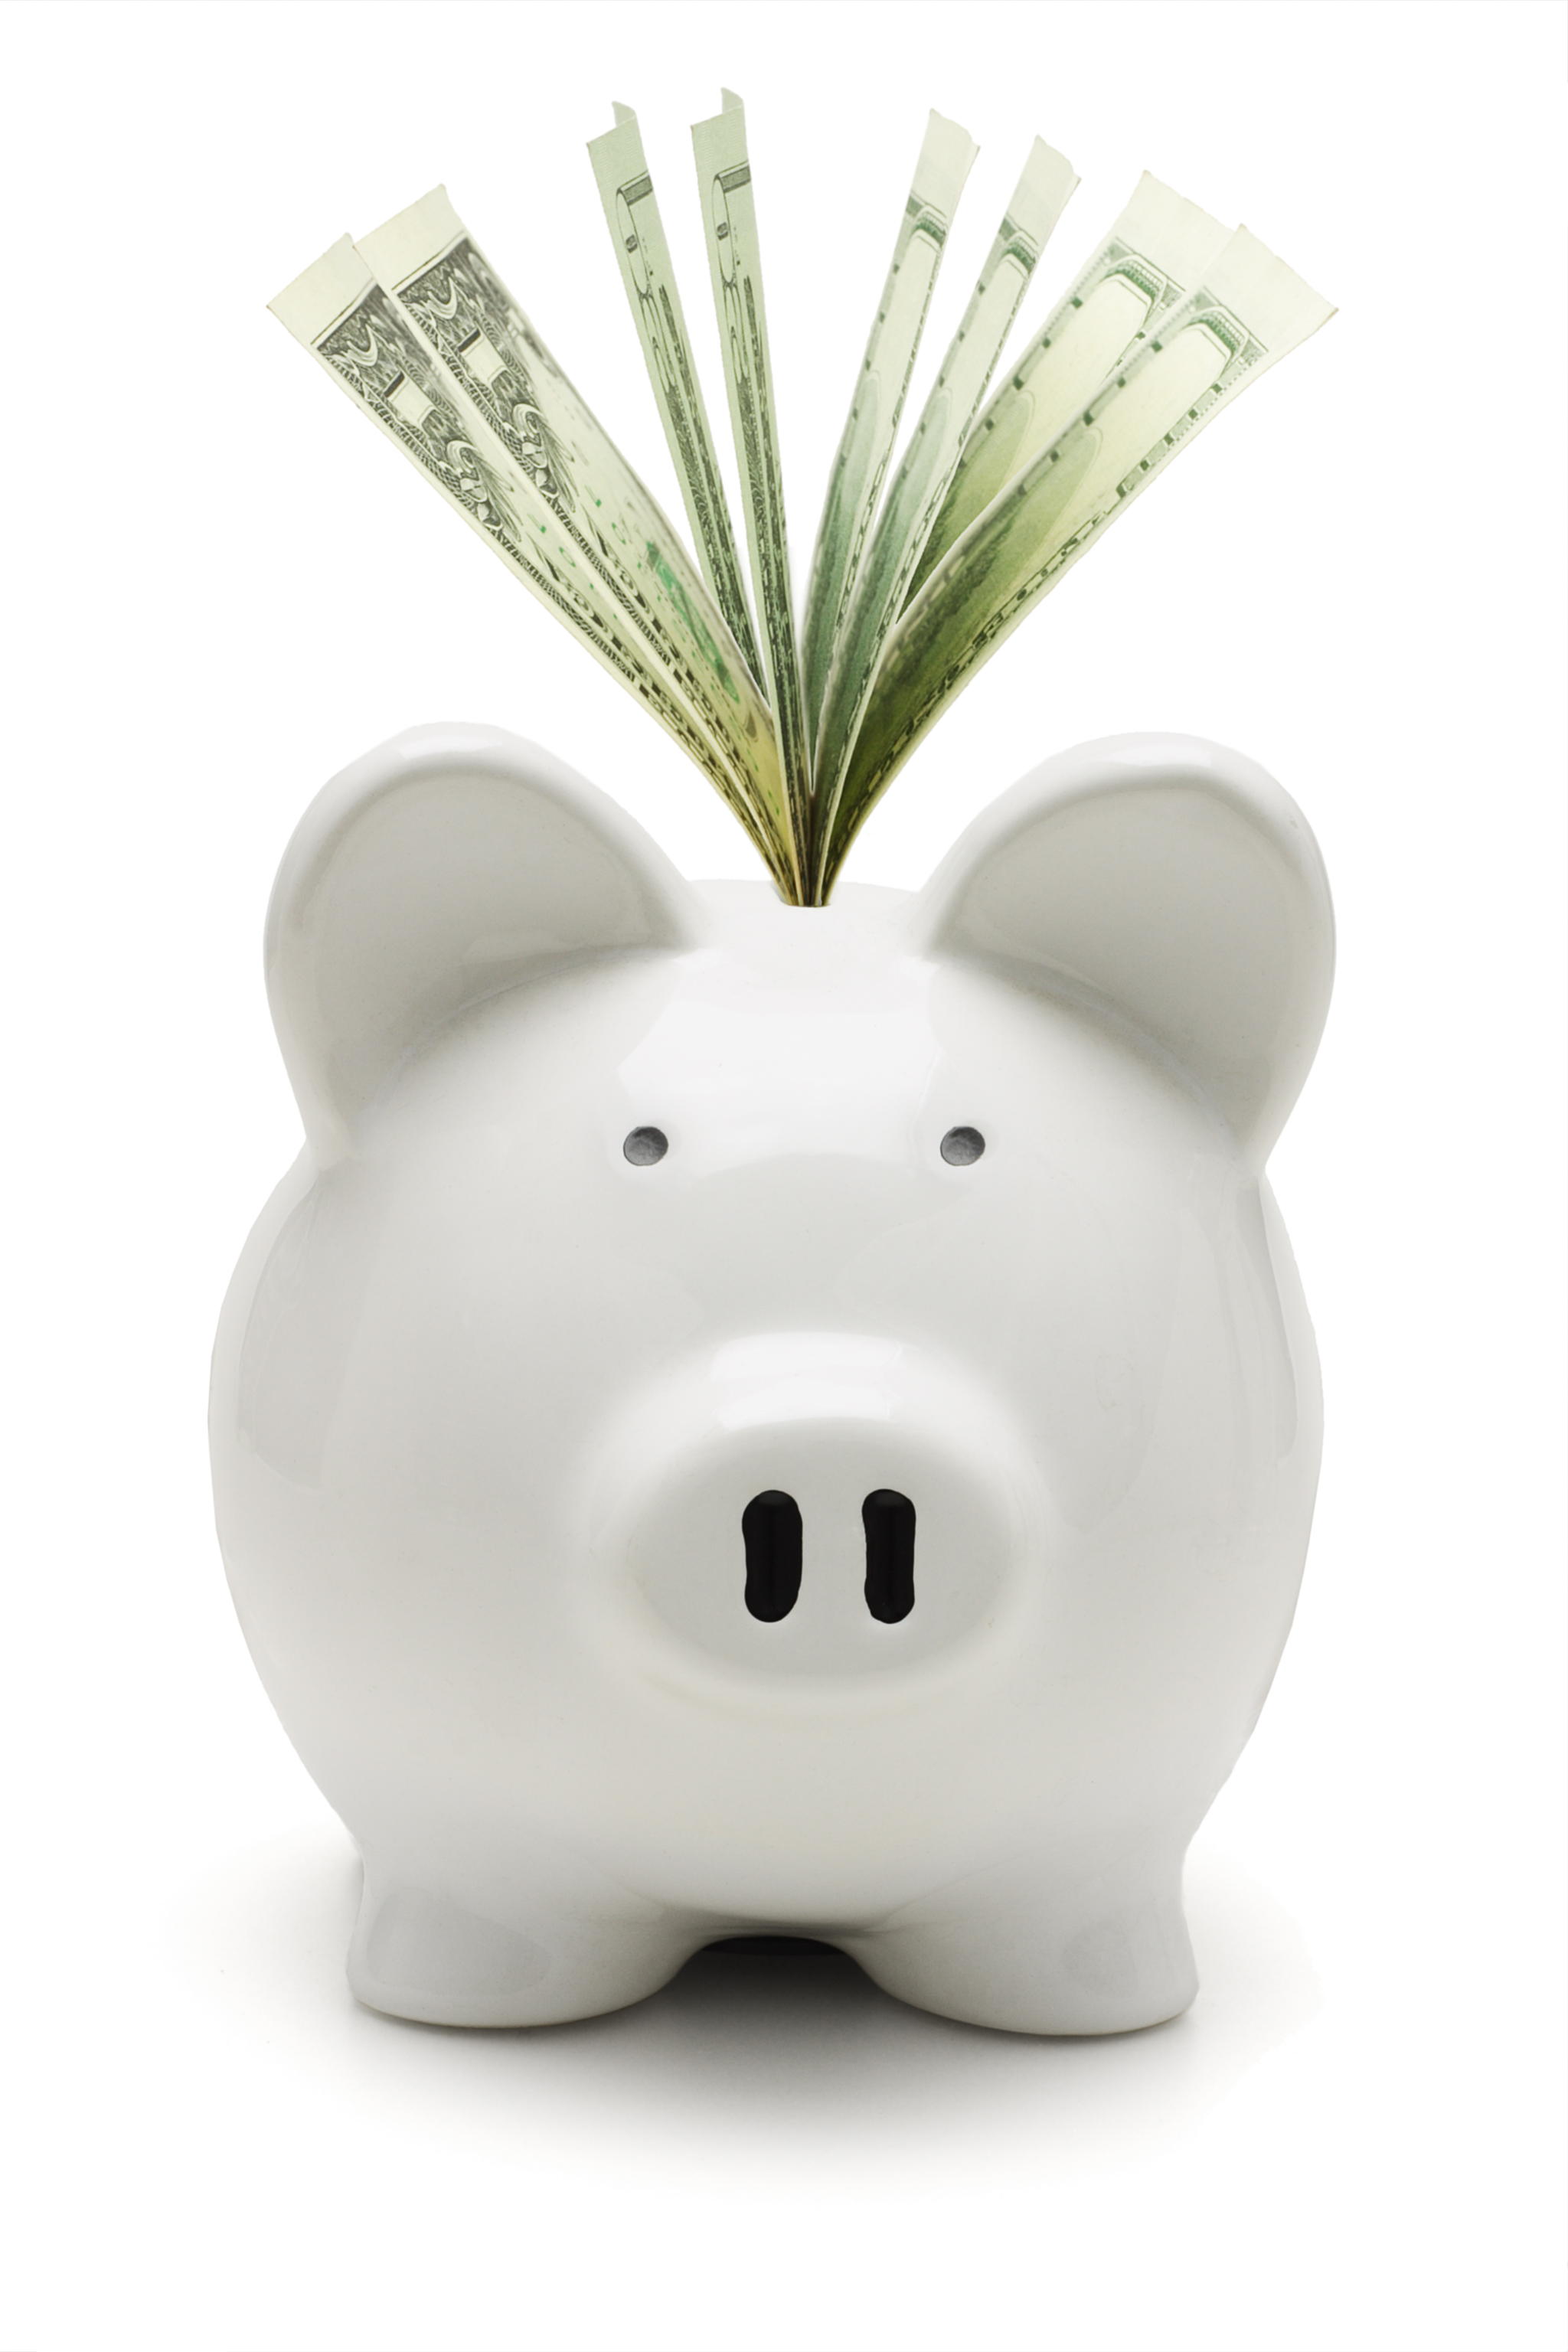 White piggy bank and US dollars on white background